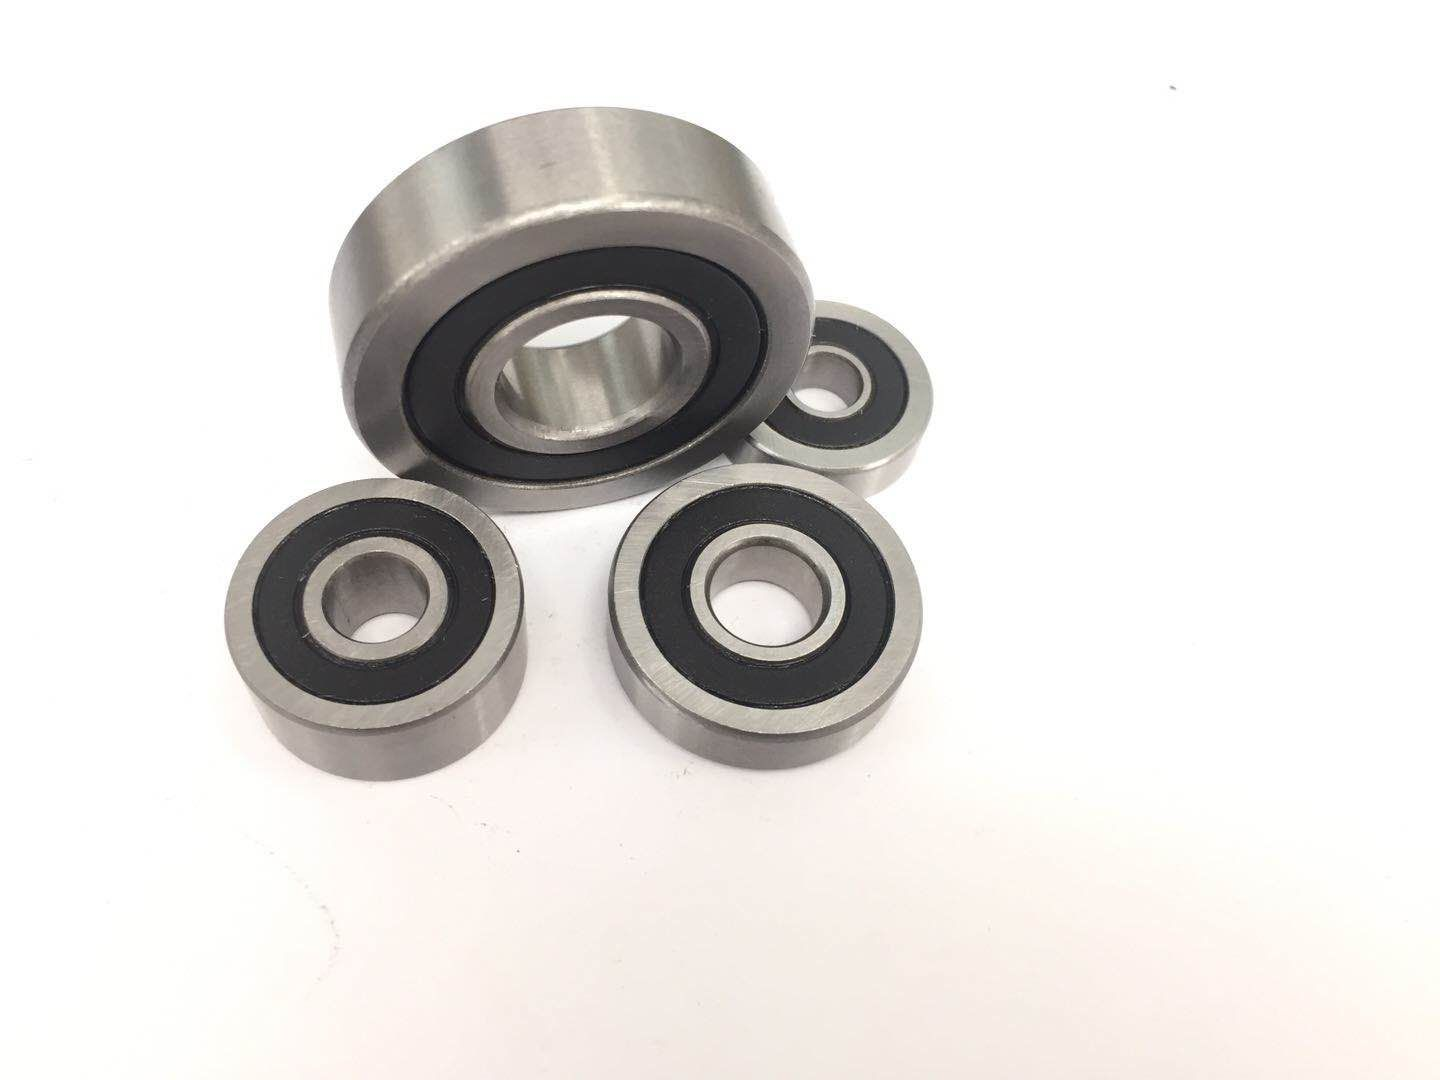 LR 5000 KPPU LR5000KDDU High Precision Deep Groove Ball Bearing